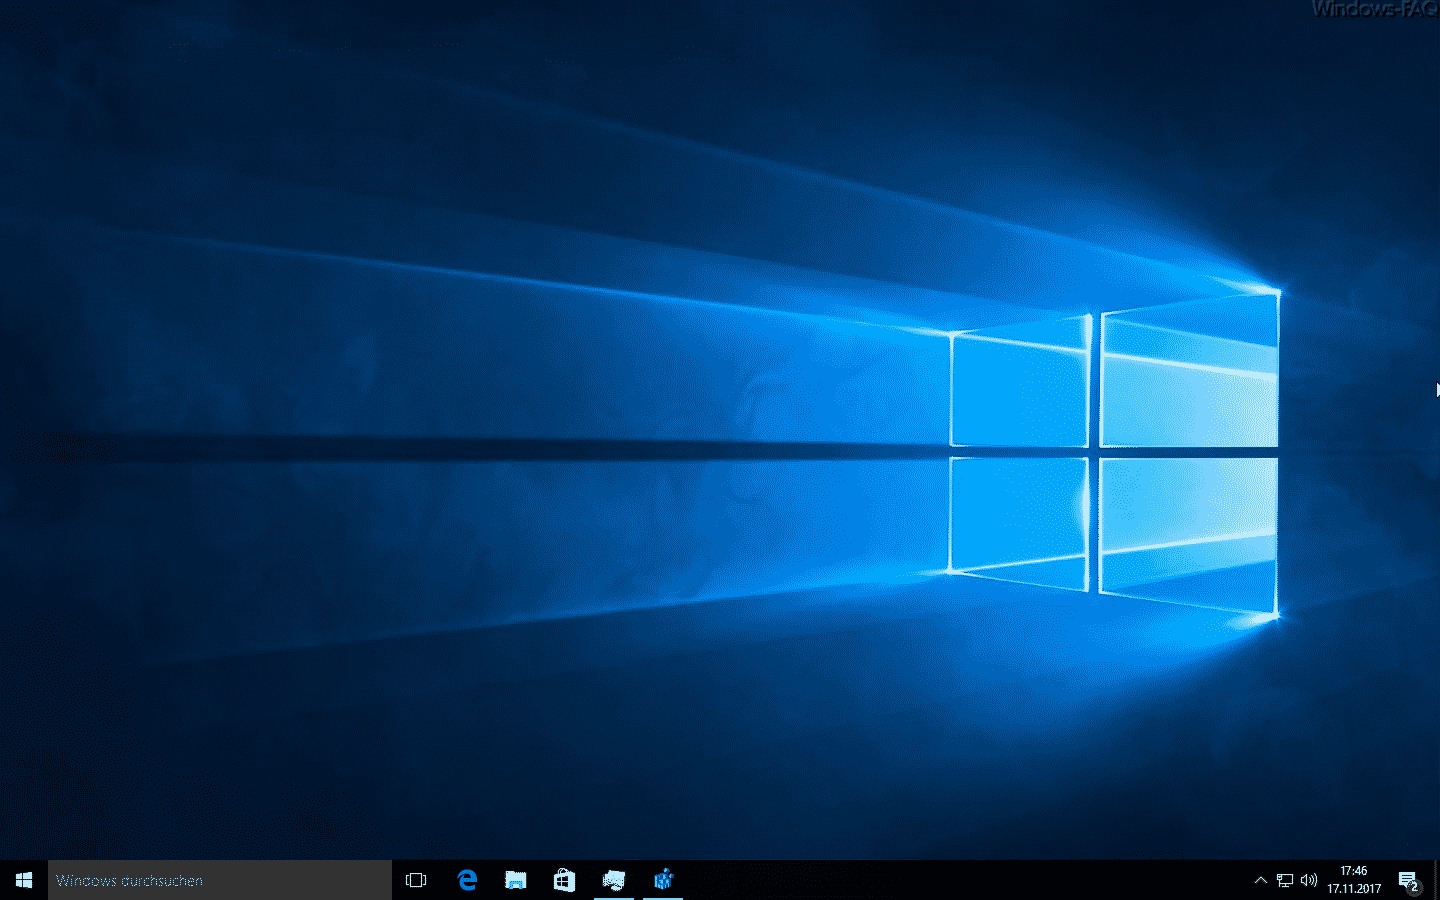 Windows 10 Desktop ohne Symbole